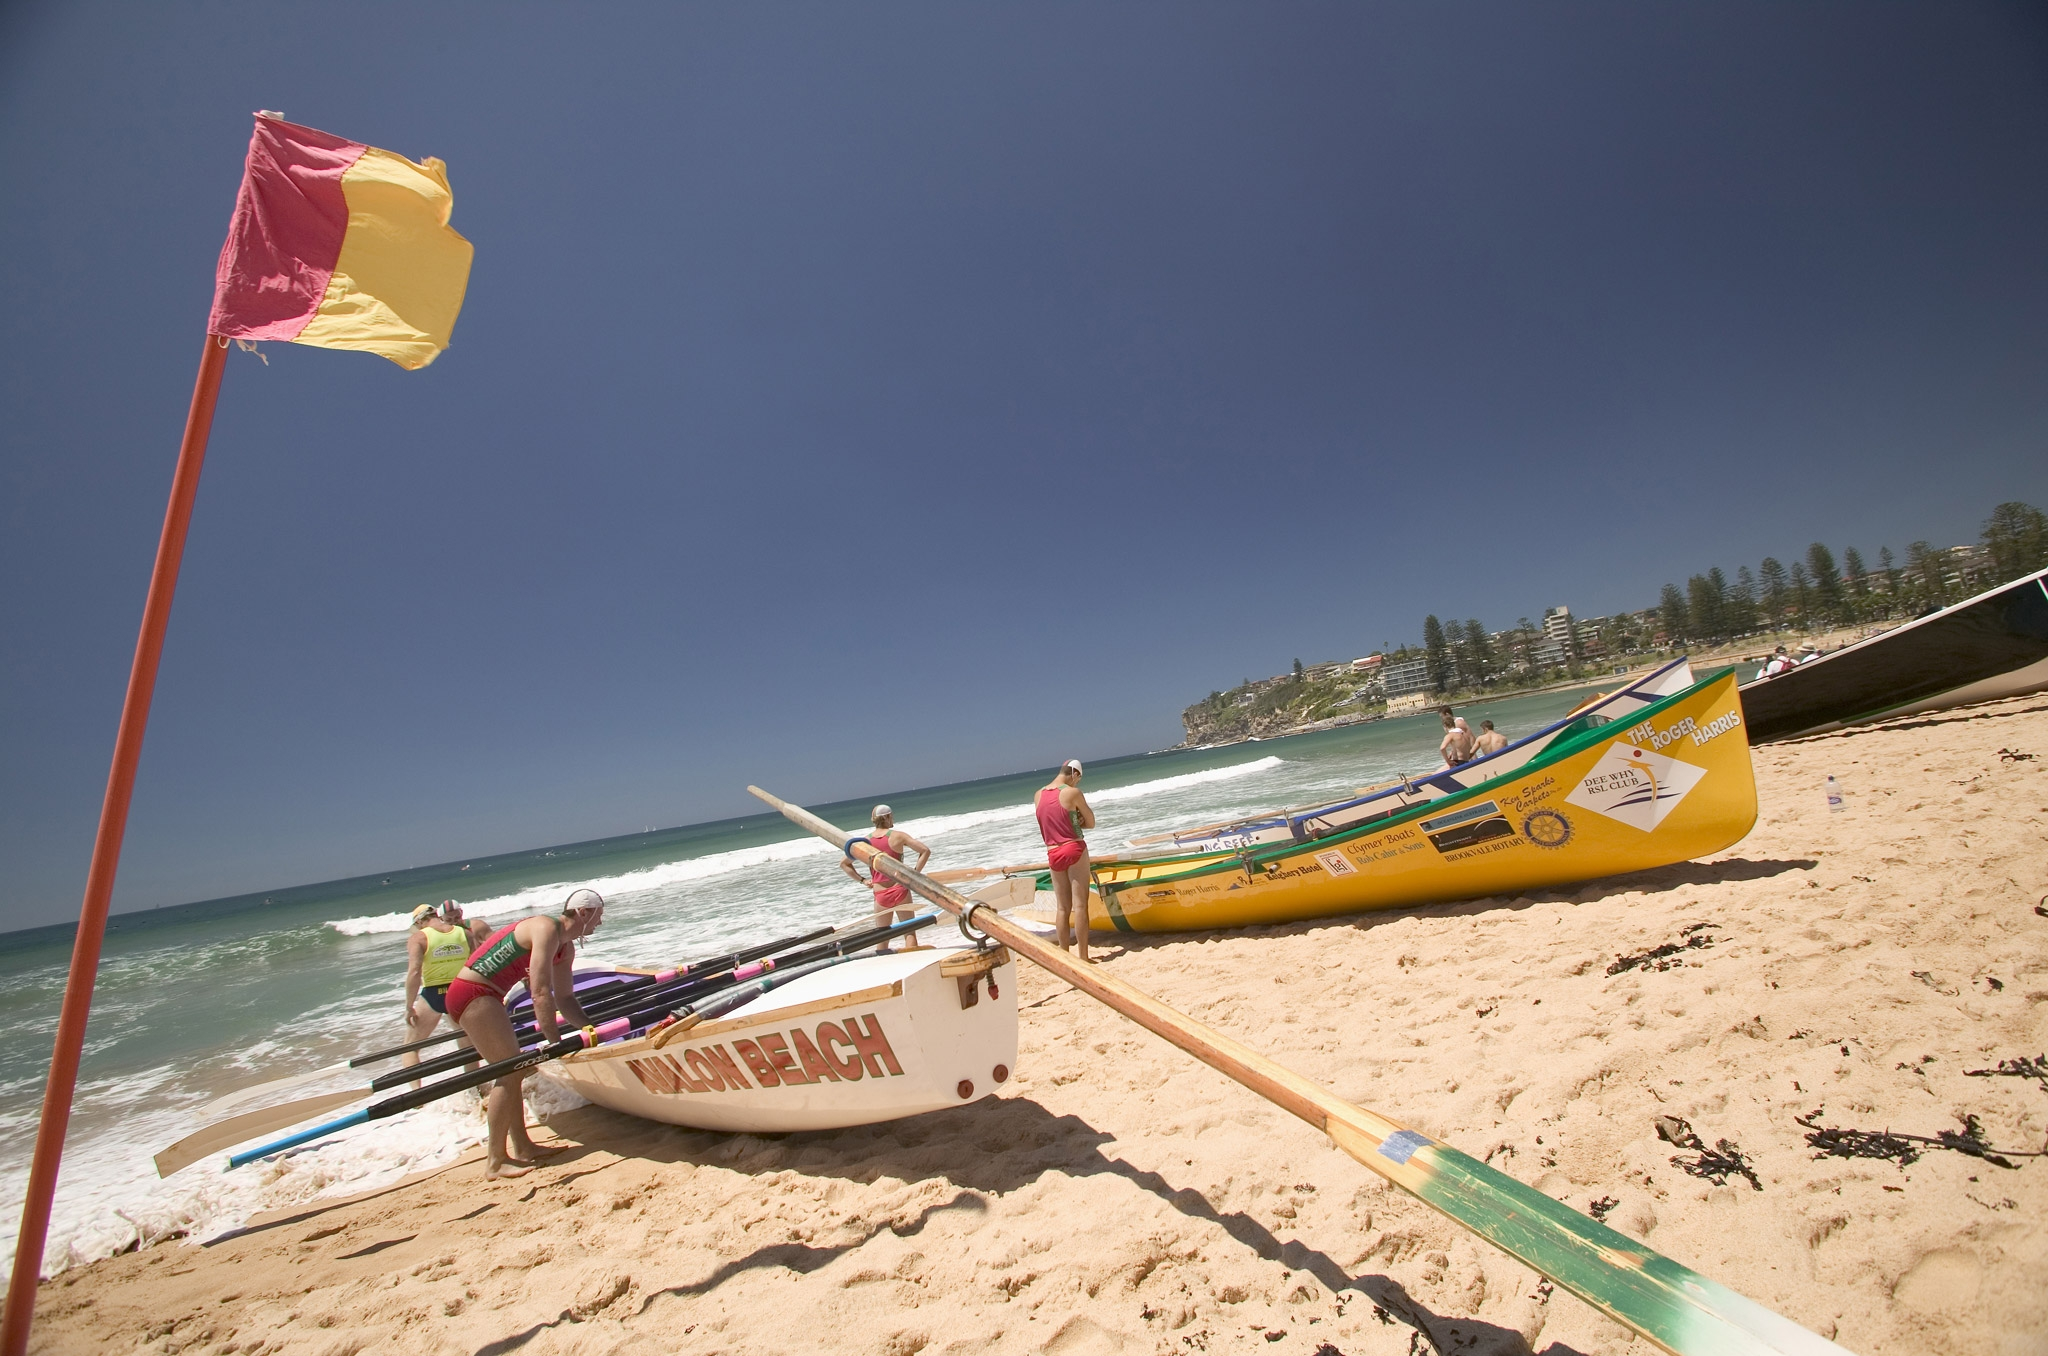 Image � Sydney Northern Beaches Tourism Association